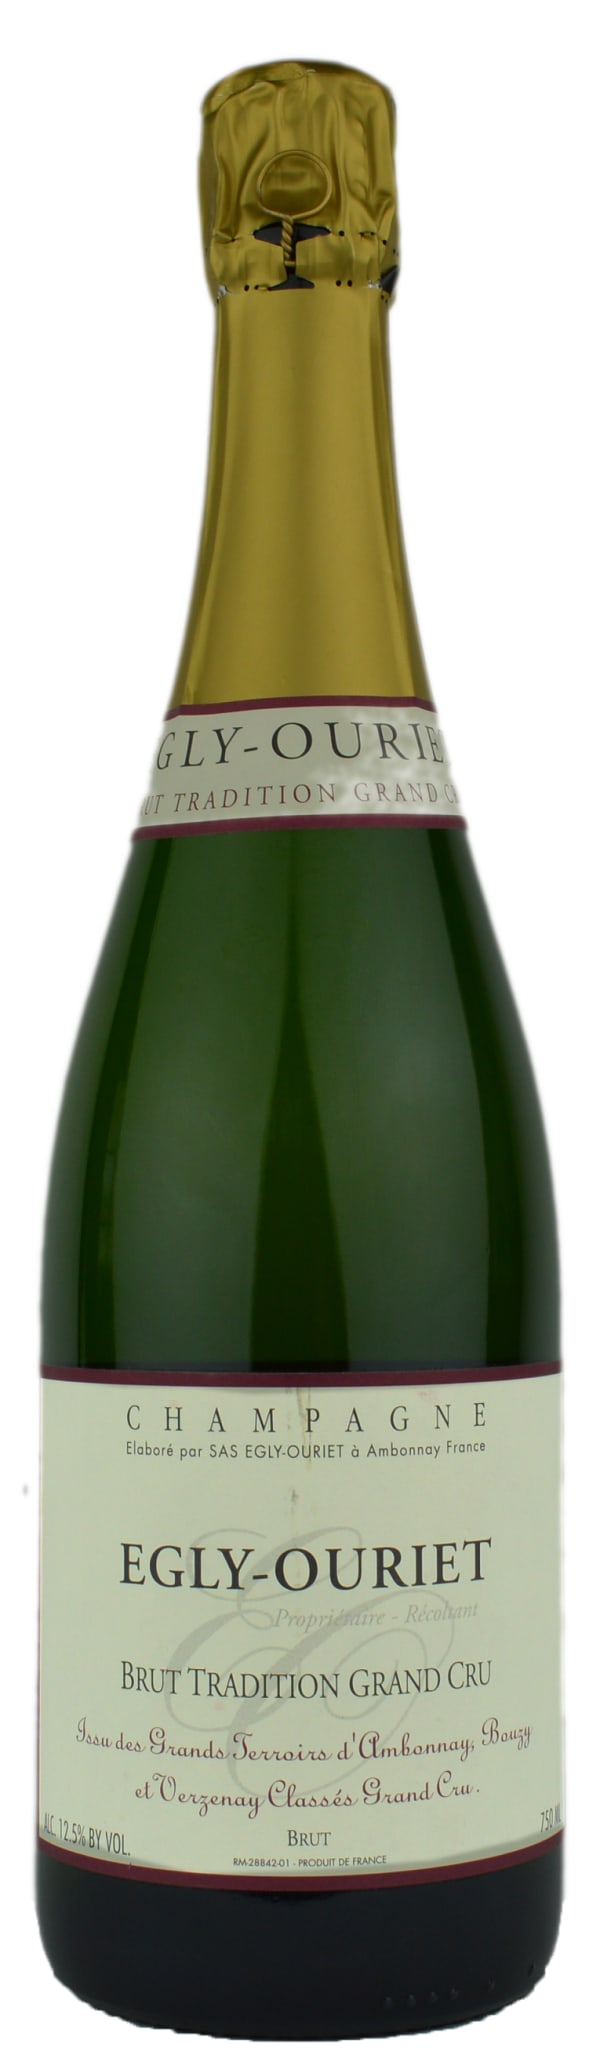 Egly-Ouriet Tradition Grand Cru Champagne Brut